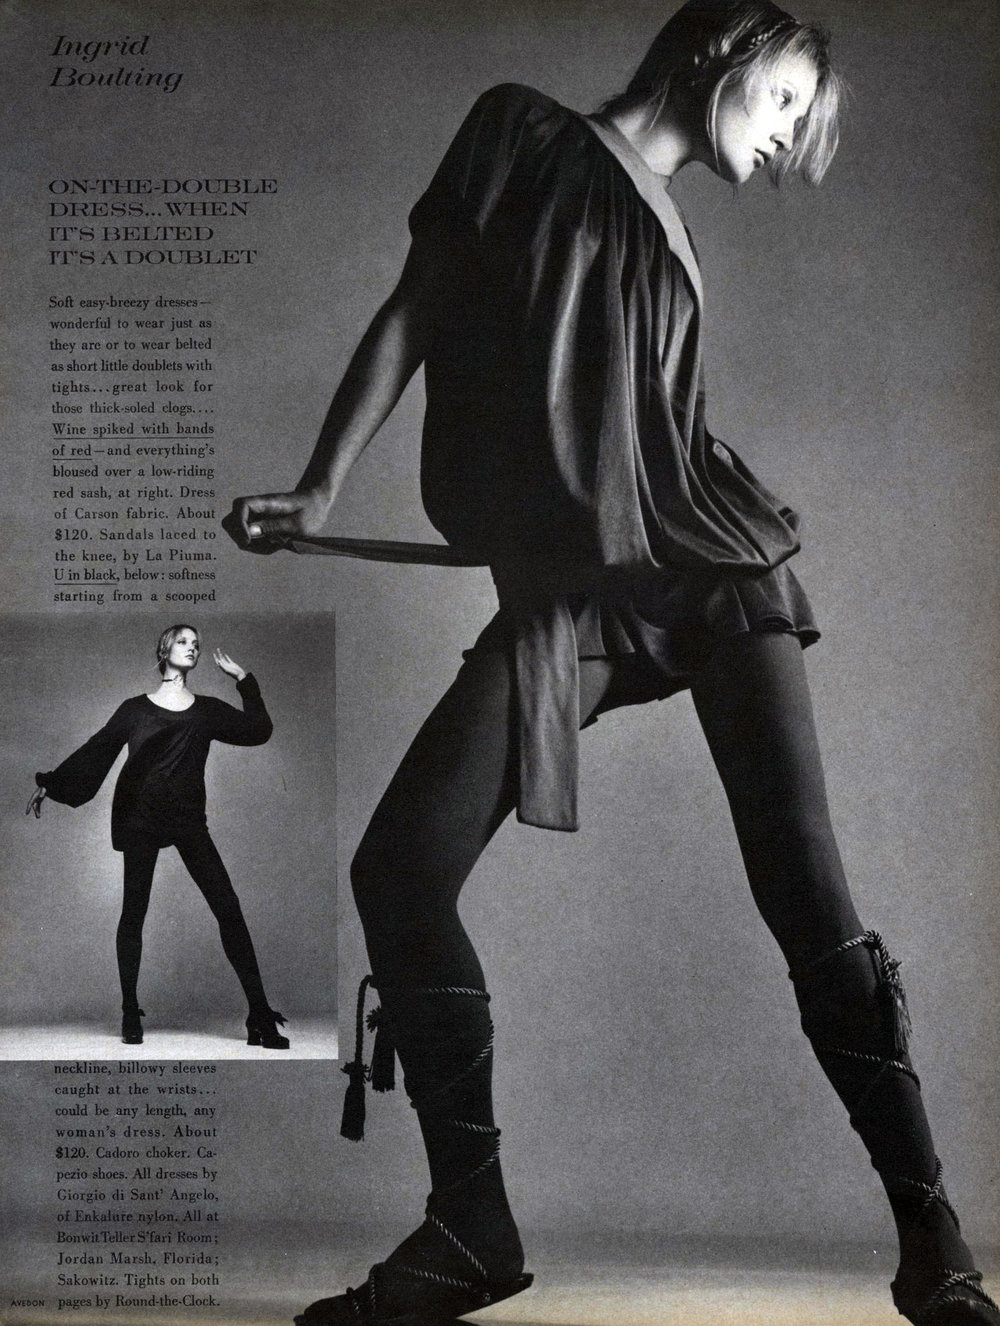 Dancerlike Ingrid photographed by Richard Avedon for Vogue, October 15th, 1969.